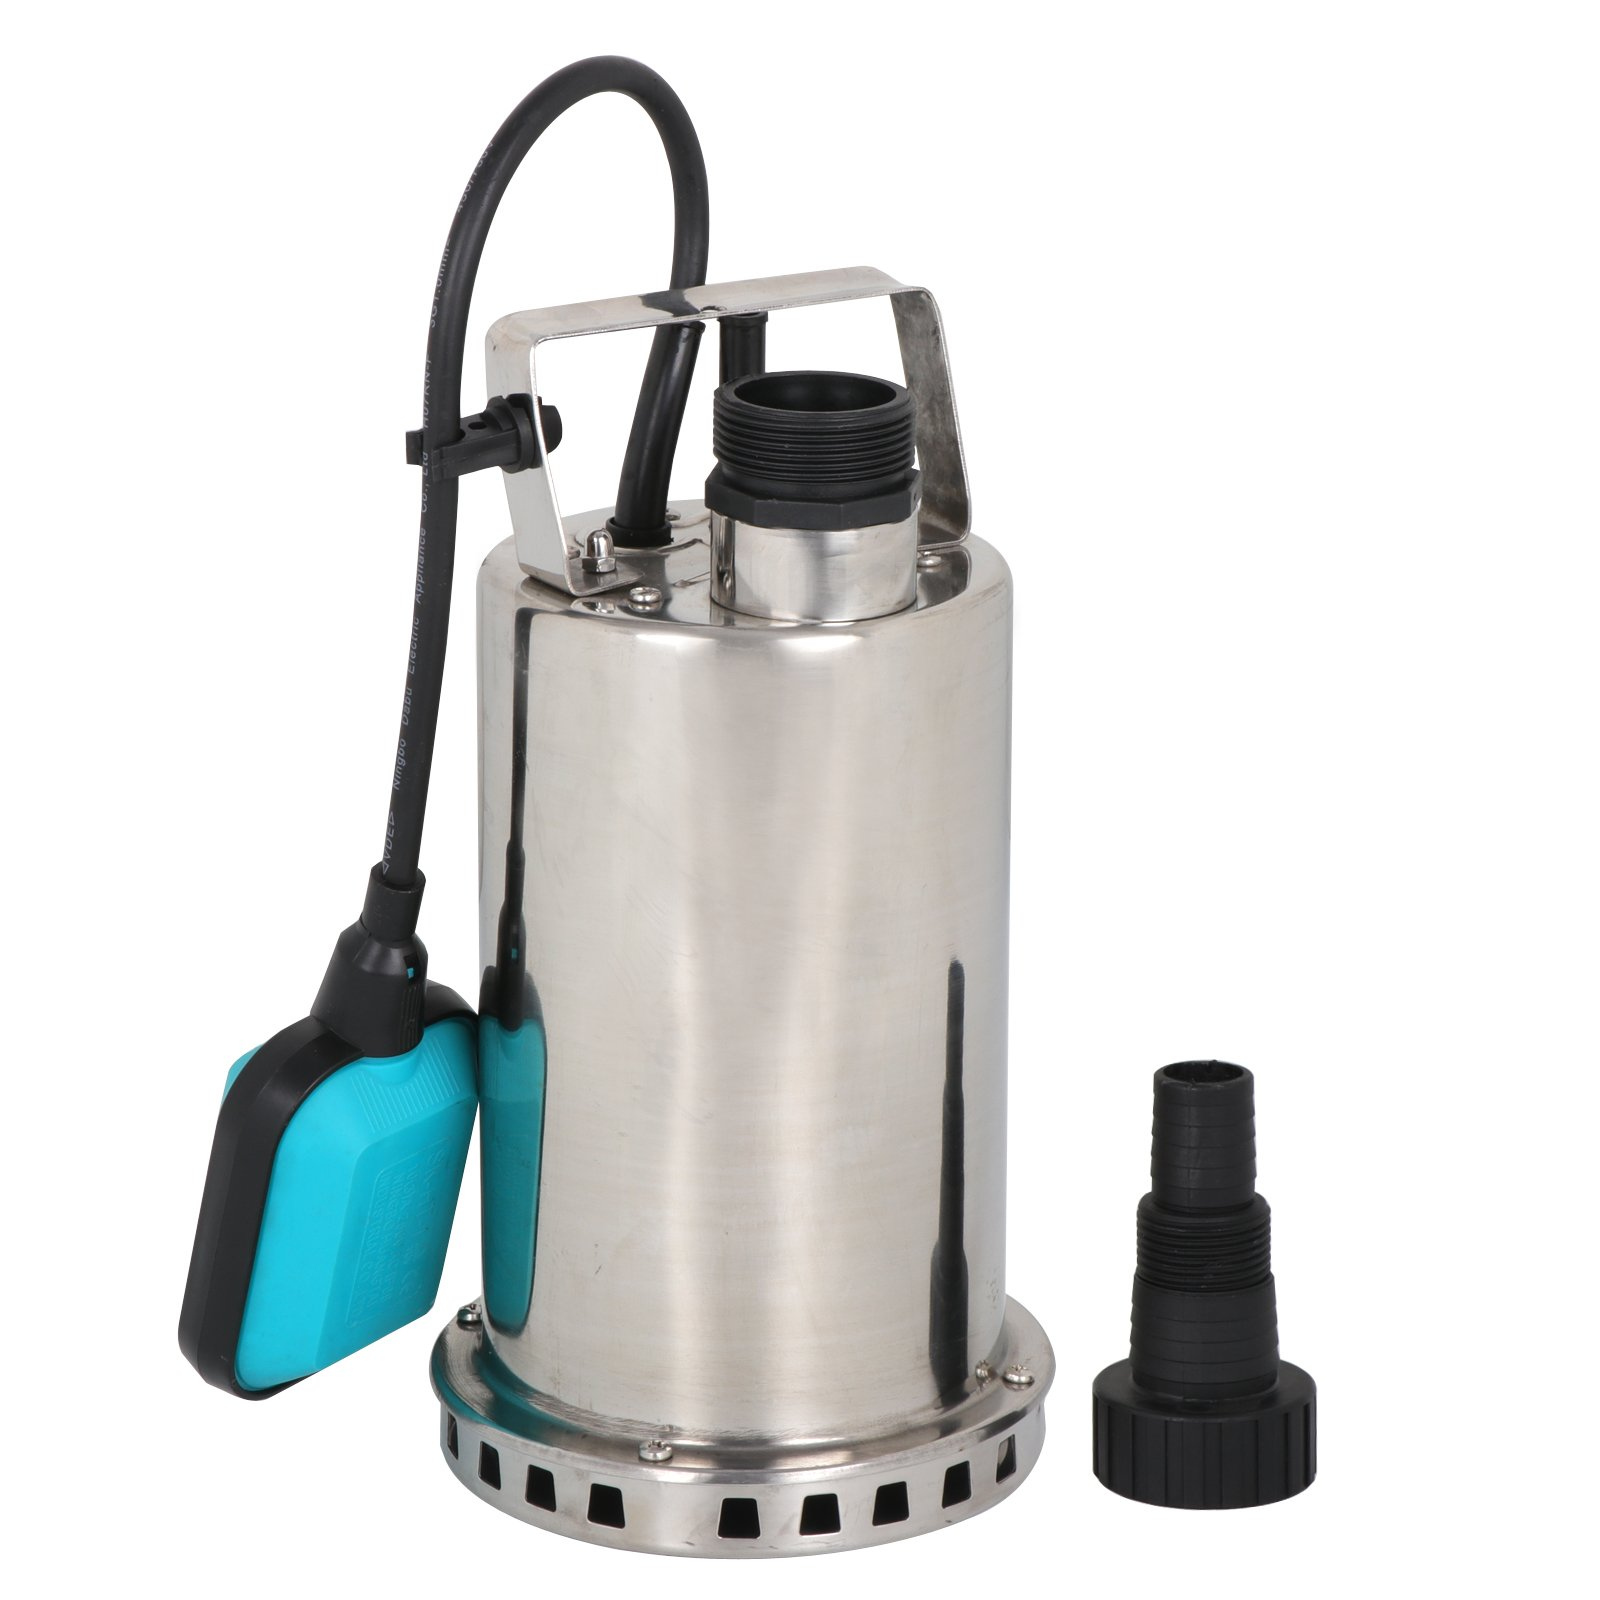 ZENY Submersible Pump Dirty Clean Water Pump Swimming Pool Pond Heavy Duty Water Transfer (3000GPH)